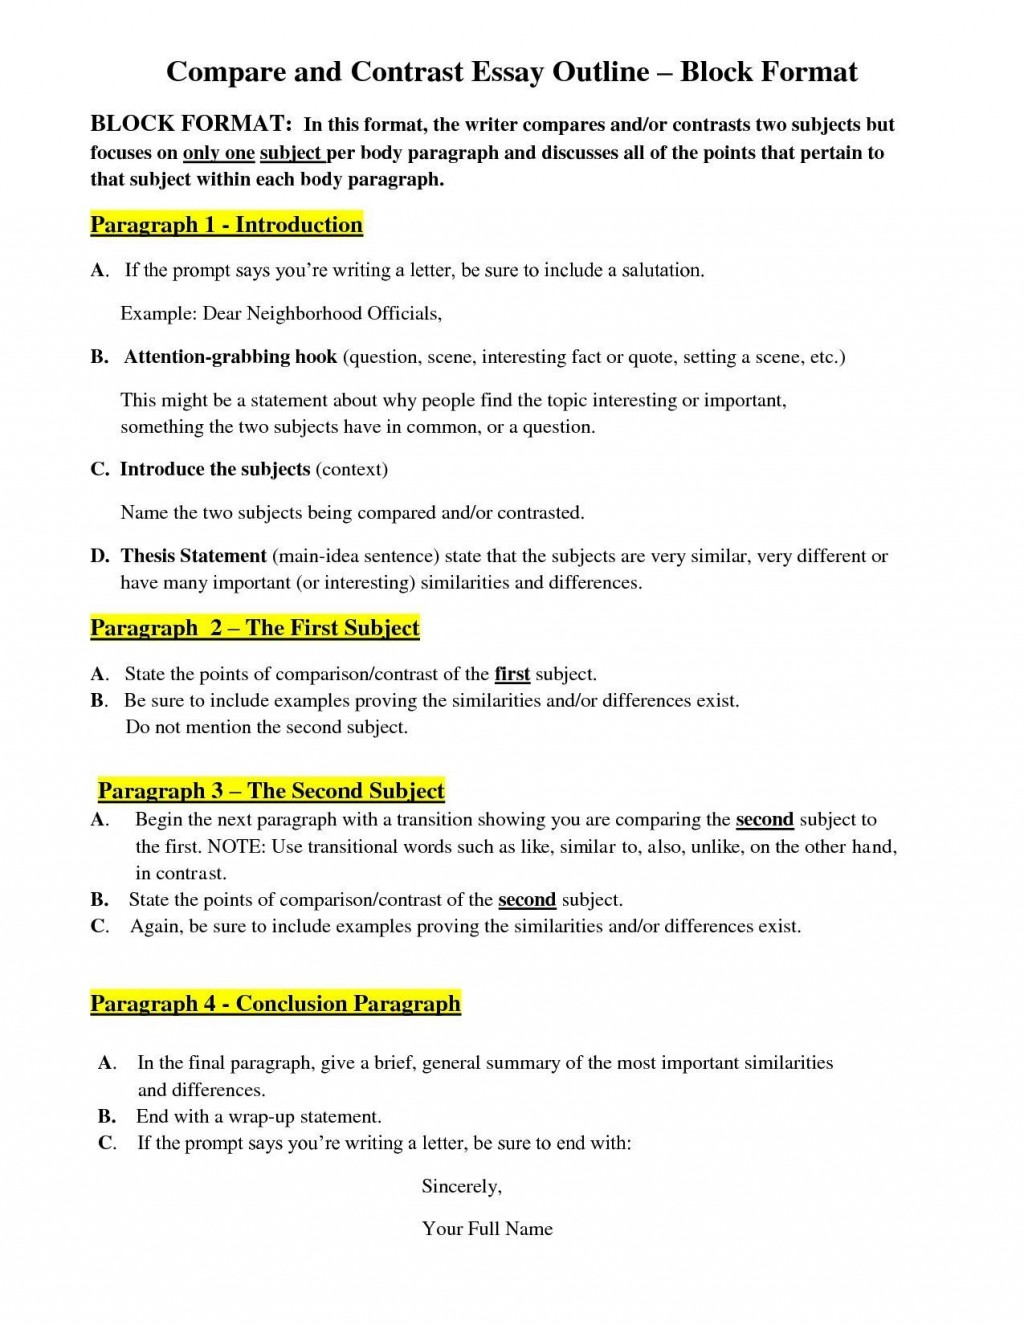 007 Compare And Contrast Essay Frightening Topics Outline Doc Sample 4th Grade Large